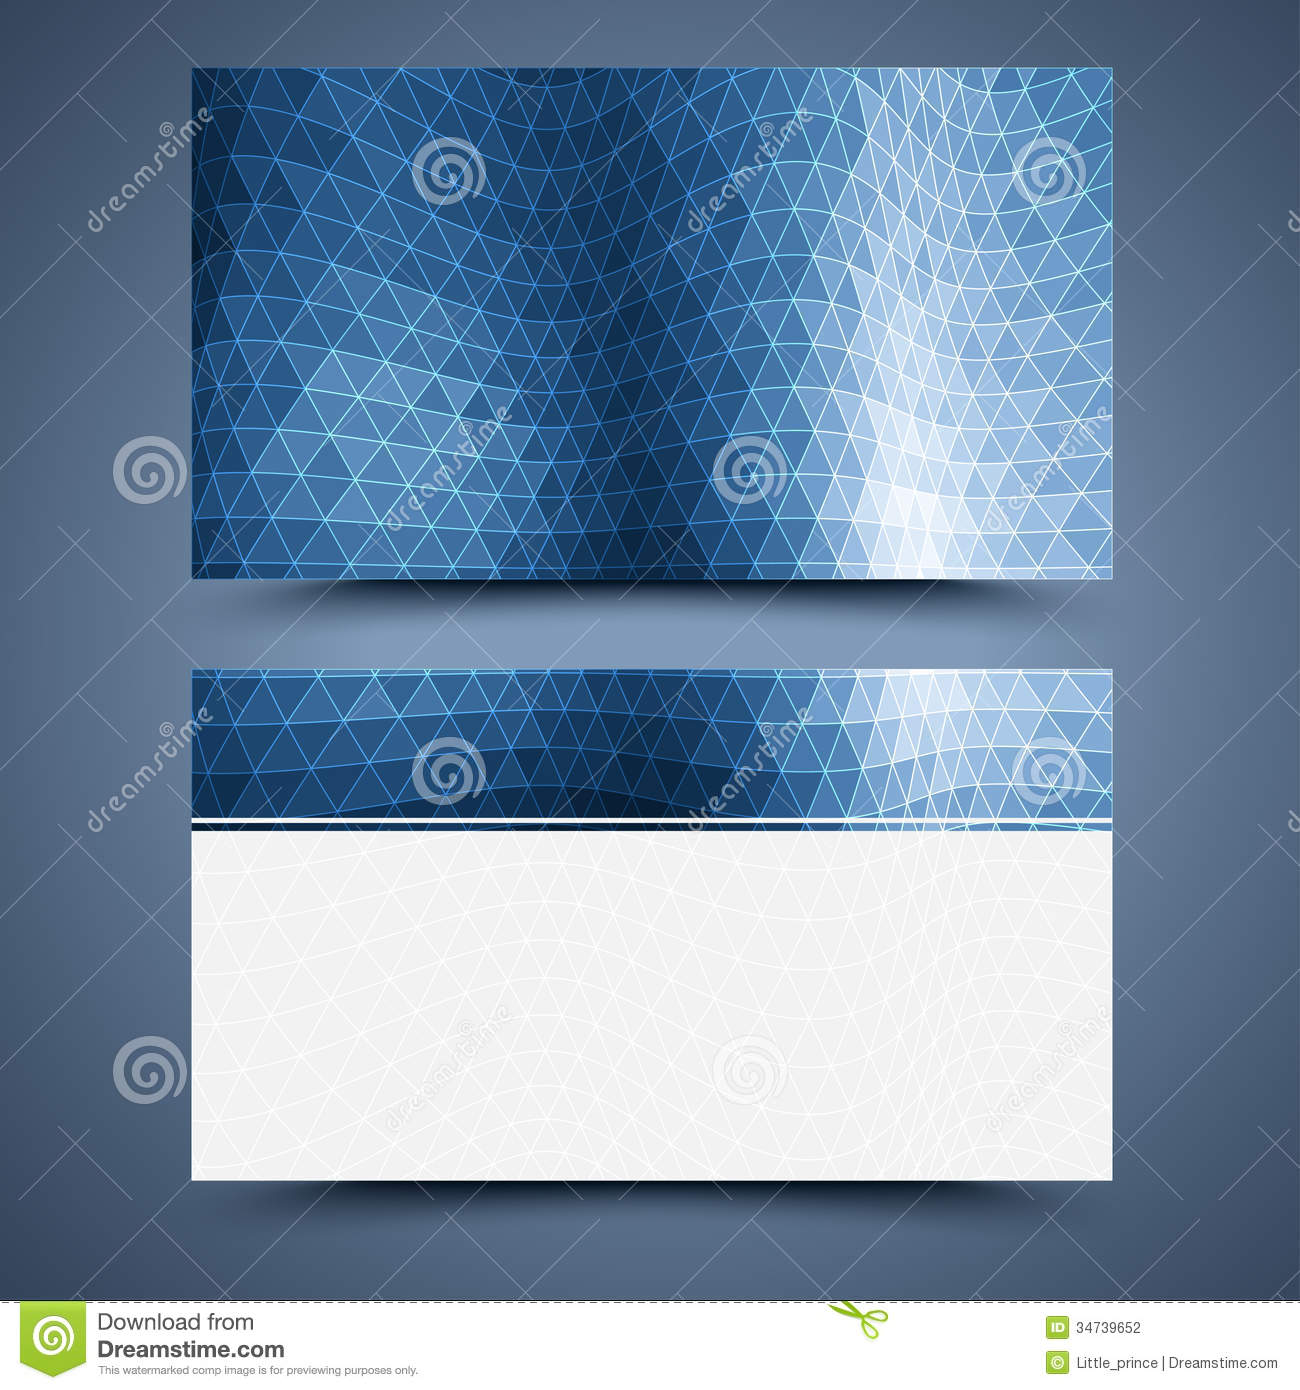 Blue business card template abstract background stock vector download blue business card template abstract background stock vector illustration of graphic backgrounds cheaphphosting